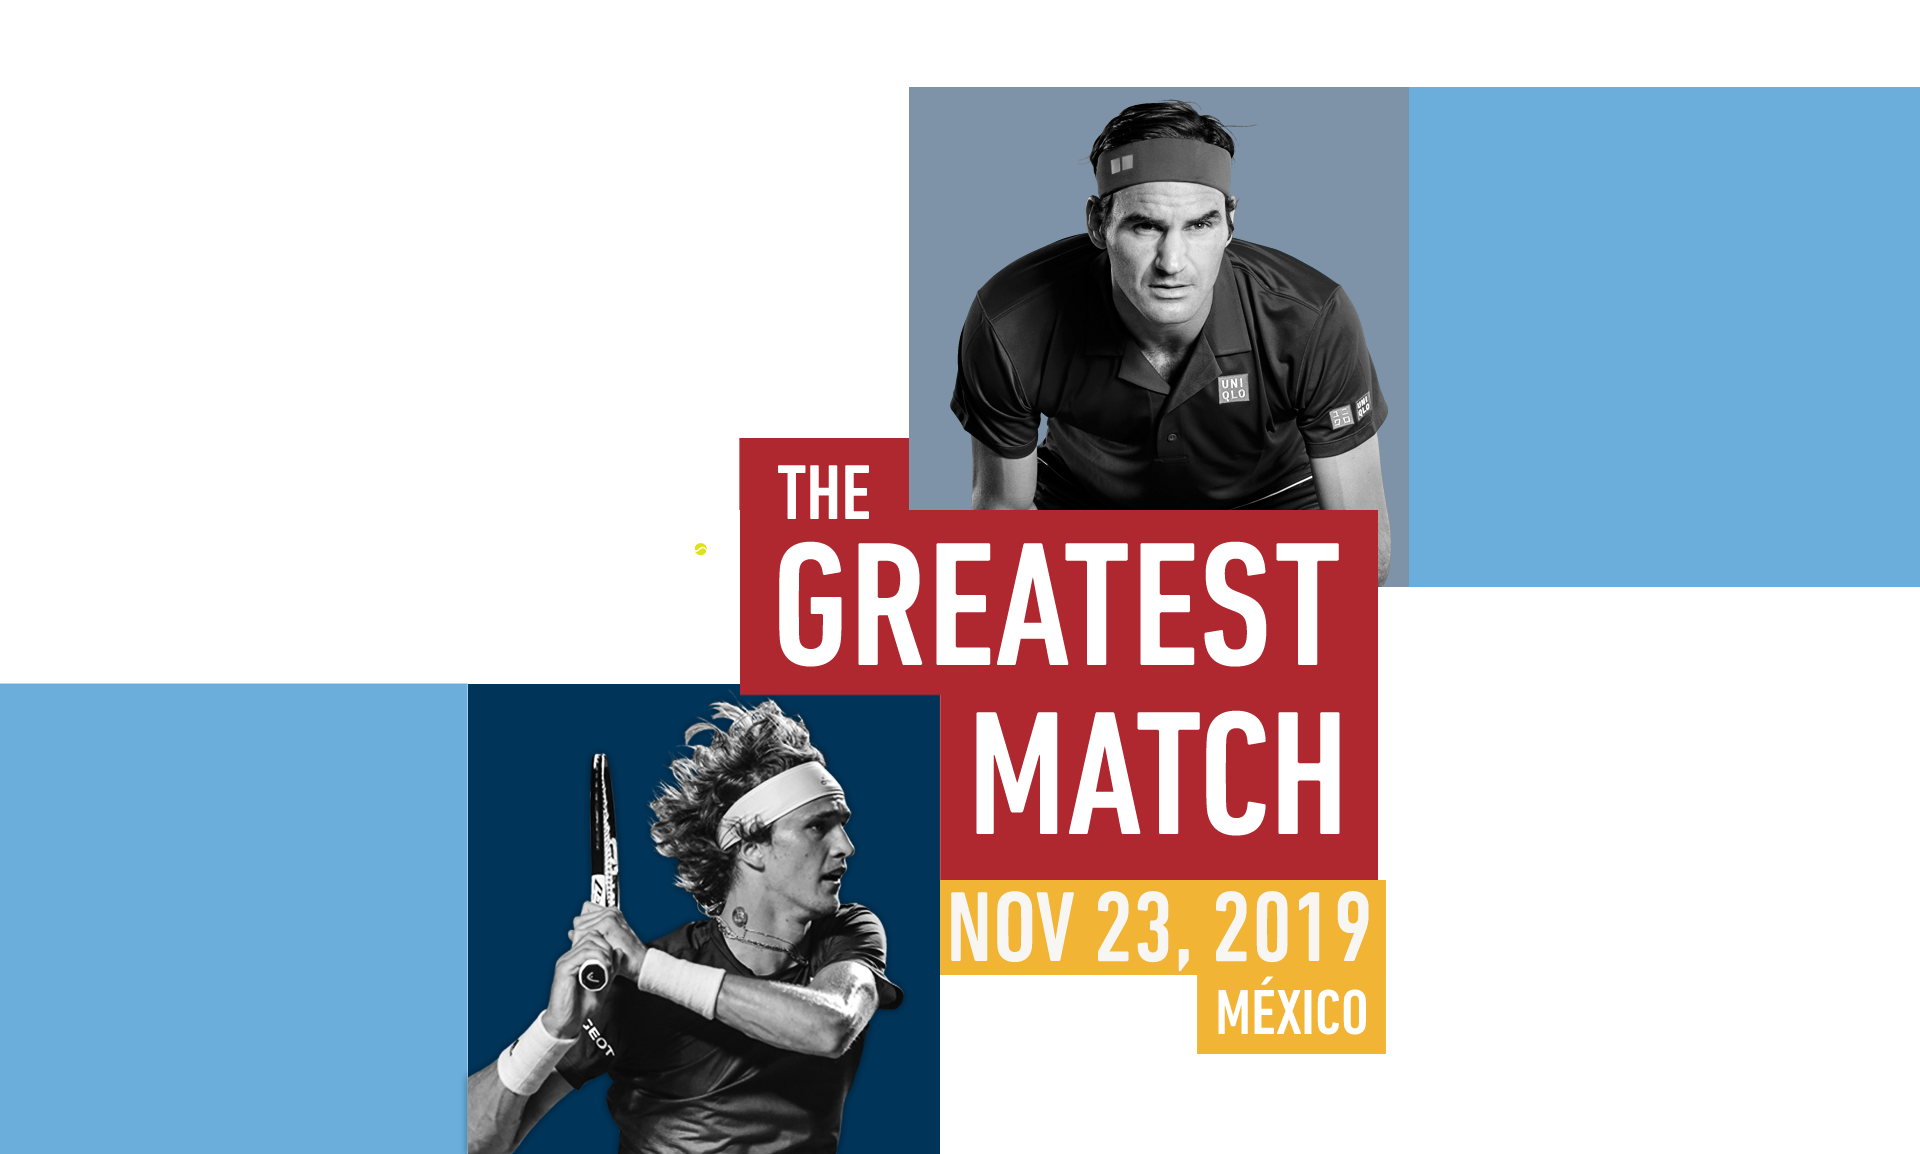 The Greatest Match